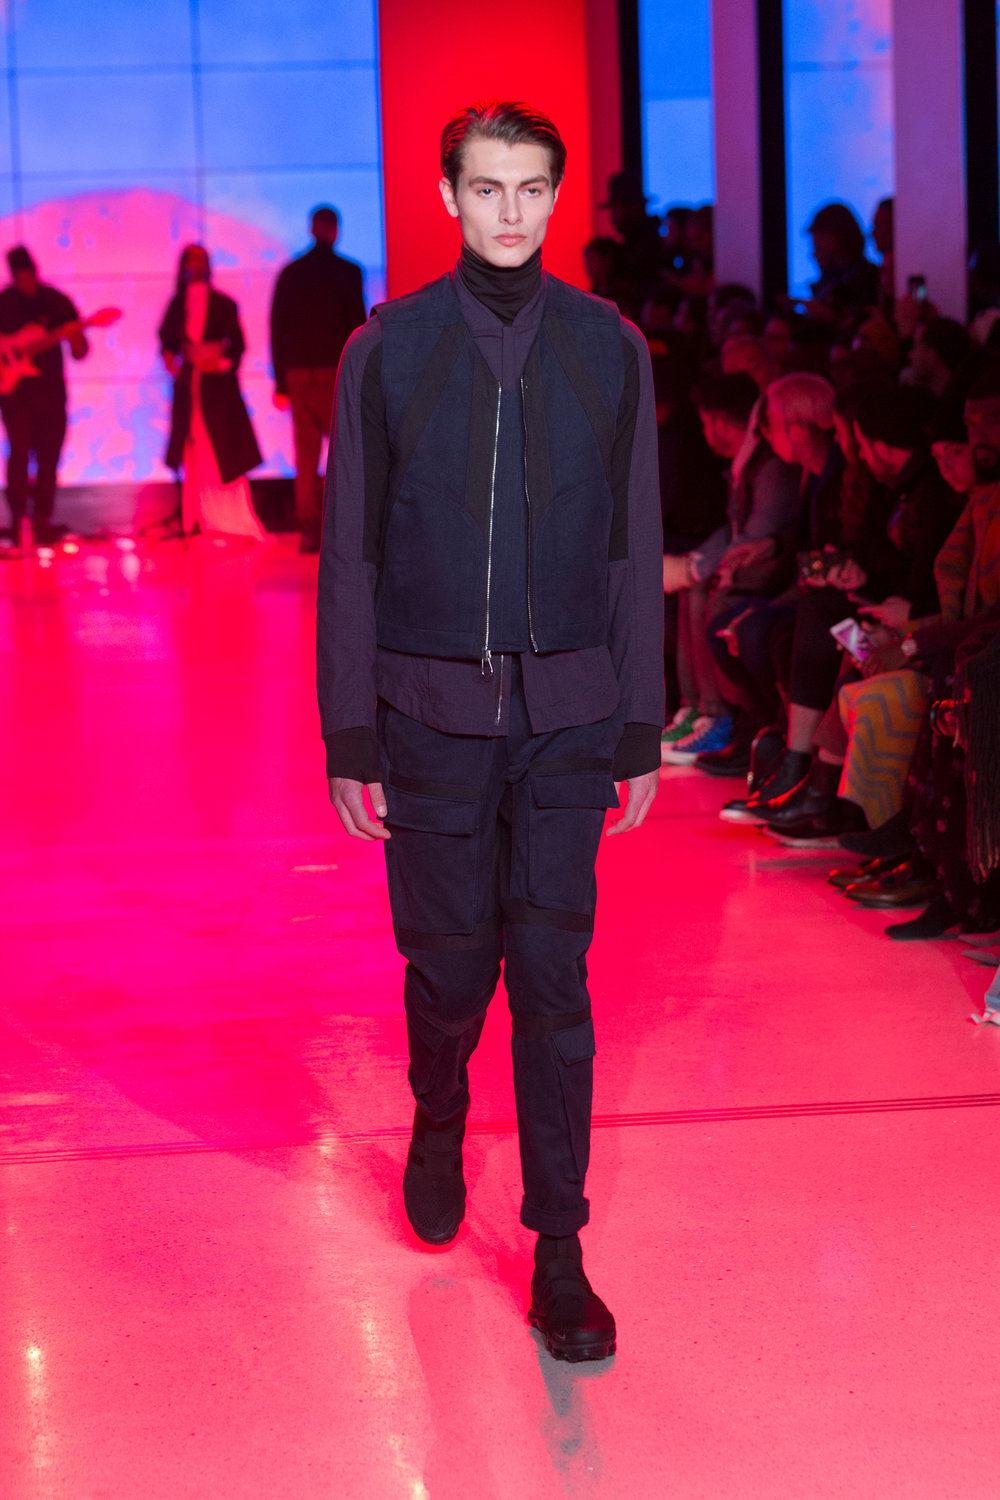 LOOK 14   ARC Undervest  / Navy French Twill   ARC Tactical Shirt  / Navy Ripstop   ARC Turtleneck  / Black Terry   ARC Tactical Pant  / Navy French Twill   Nike Air VaporMax Utility